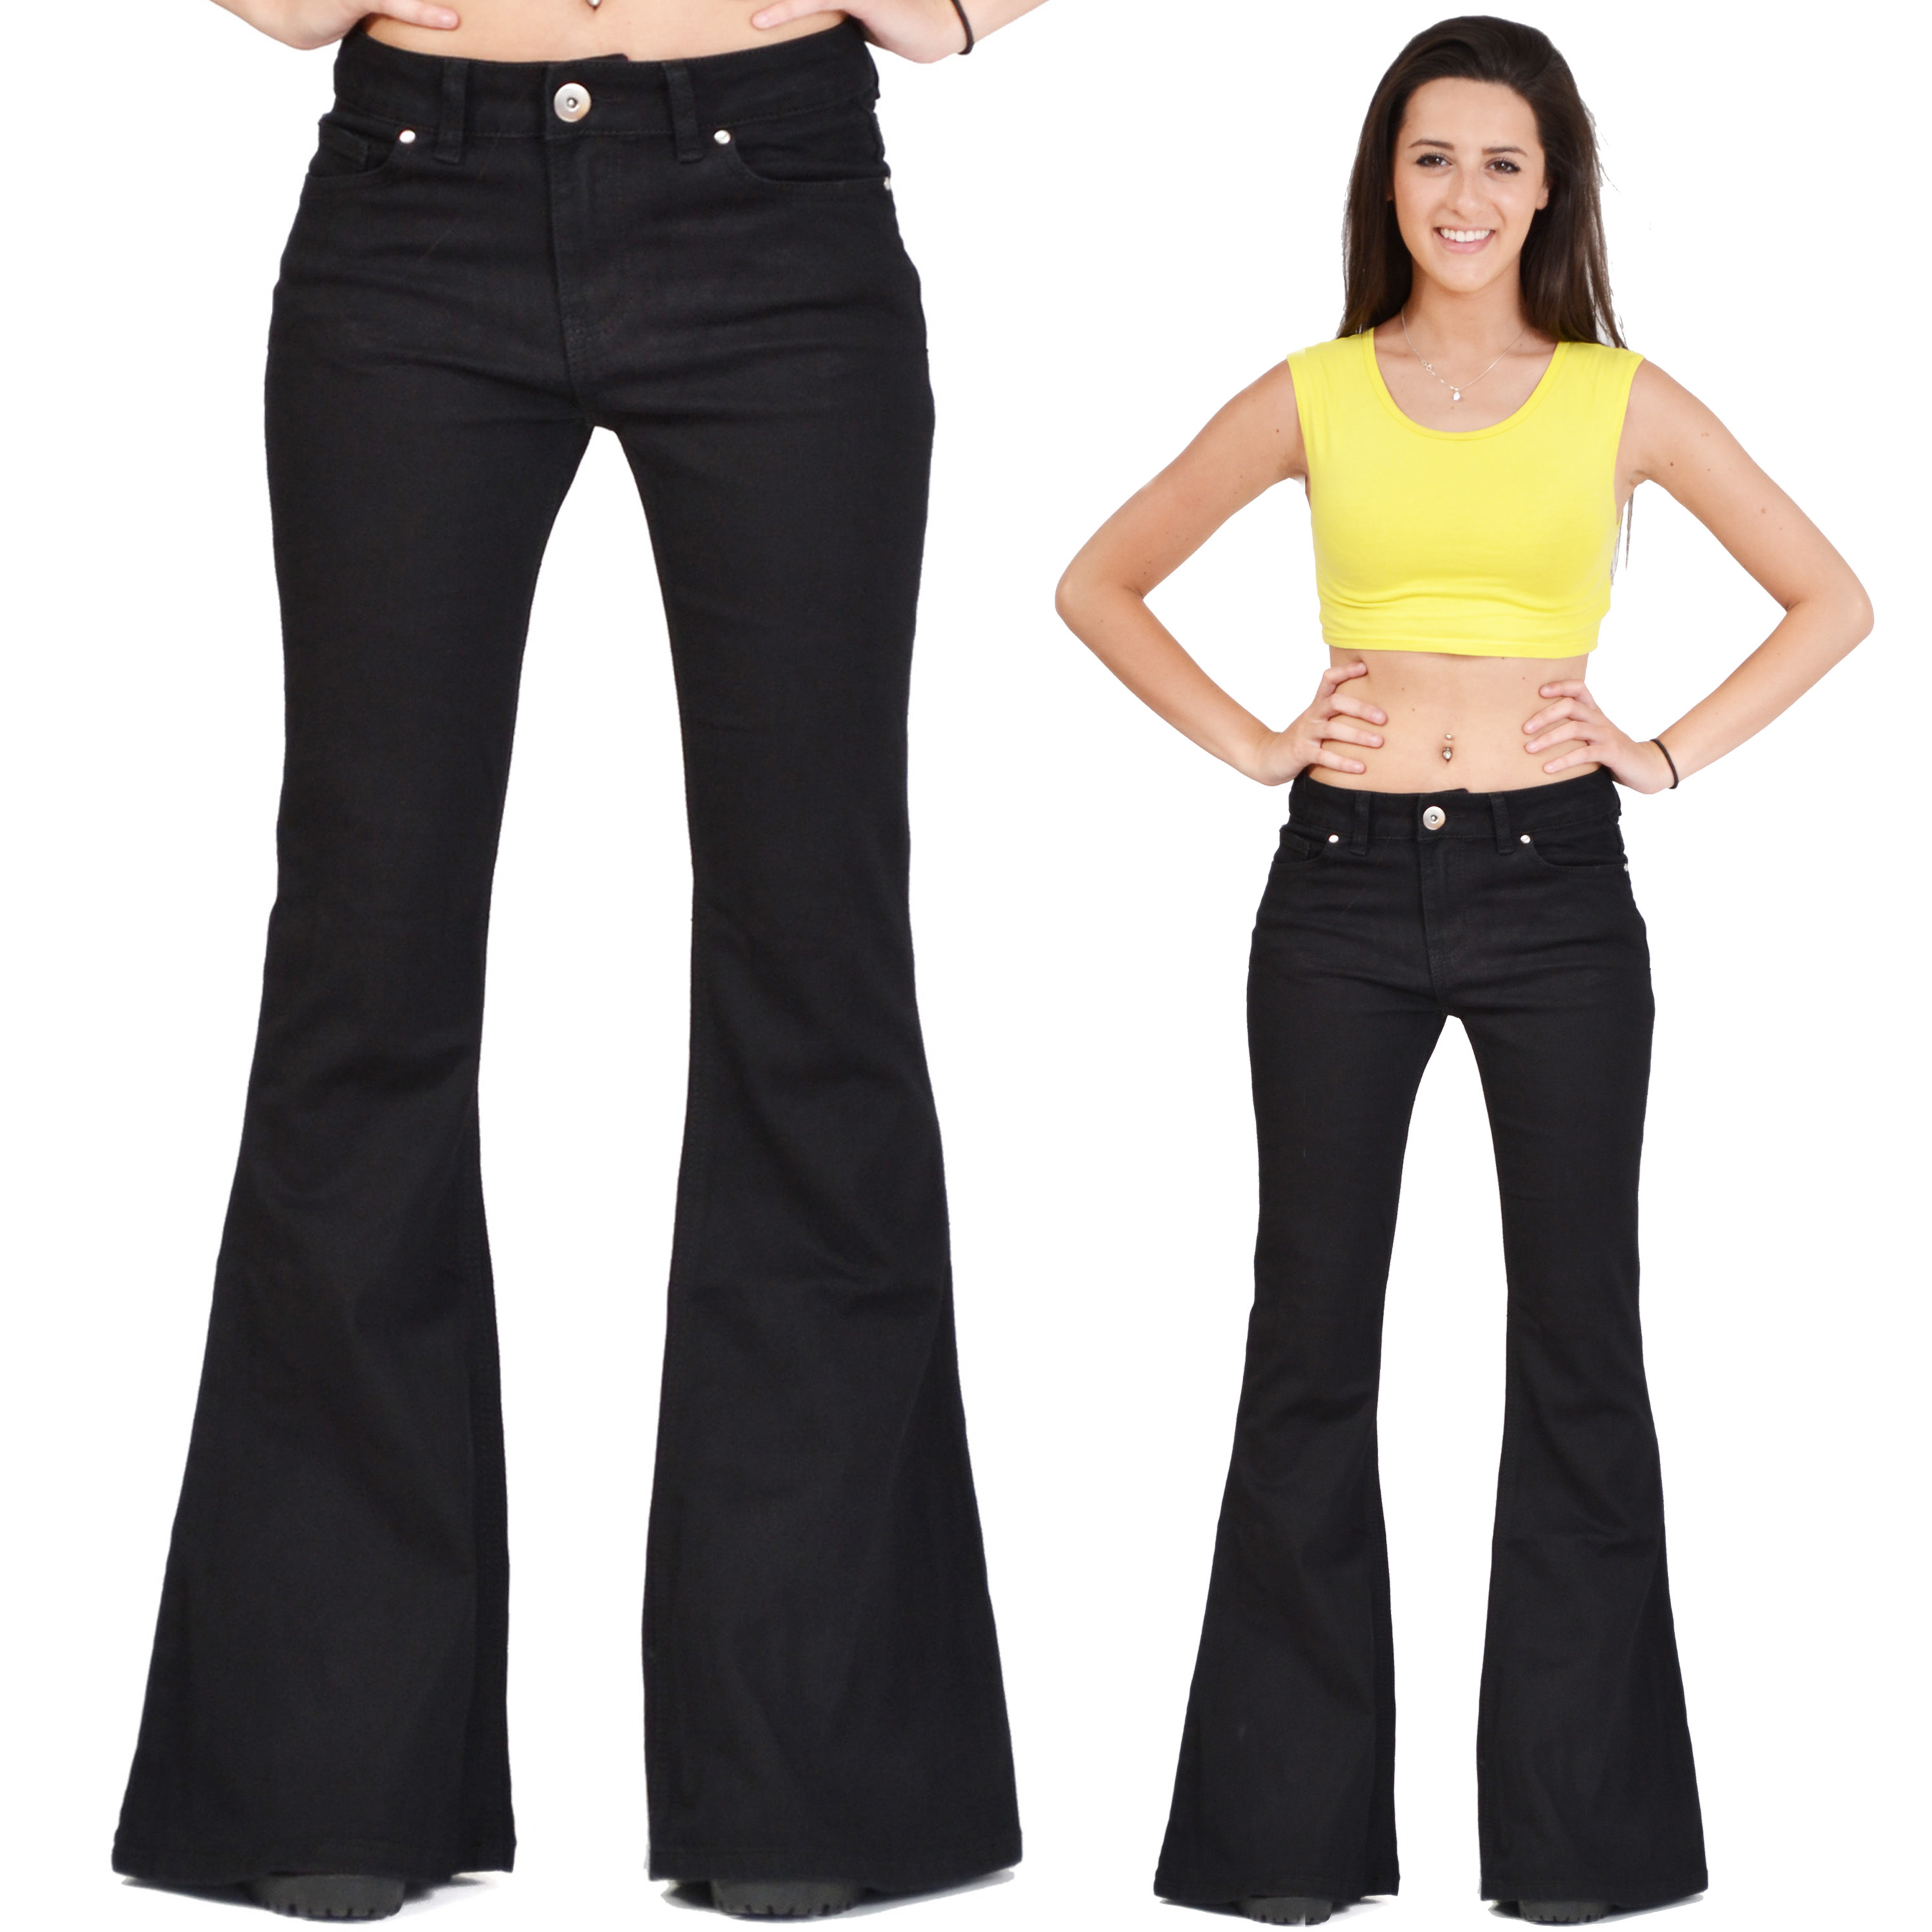 Fitted flare pants by AQUA flatter your waistline and create a soft silhouette. No matter the venue, wide-leg pants for women complement an active, contemporary active lifestyle. Count on flare pants for women to effortlessly pull together a chic, polished outfit that gets you noticed.